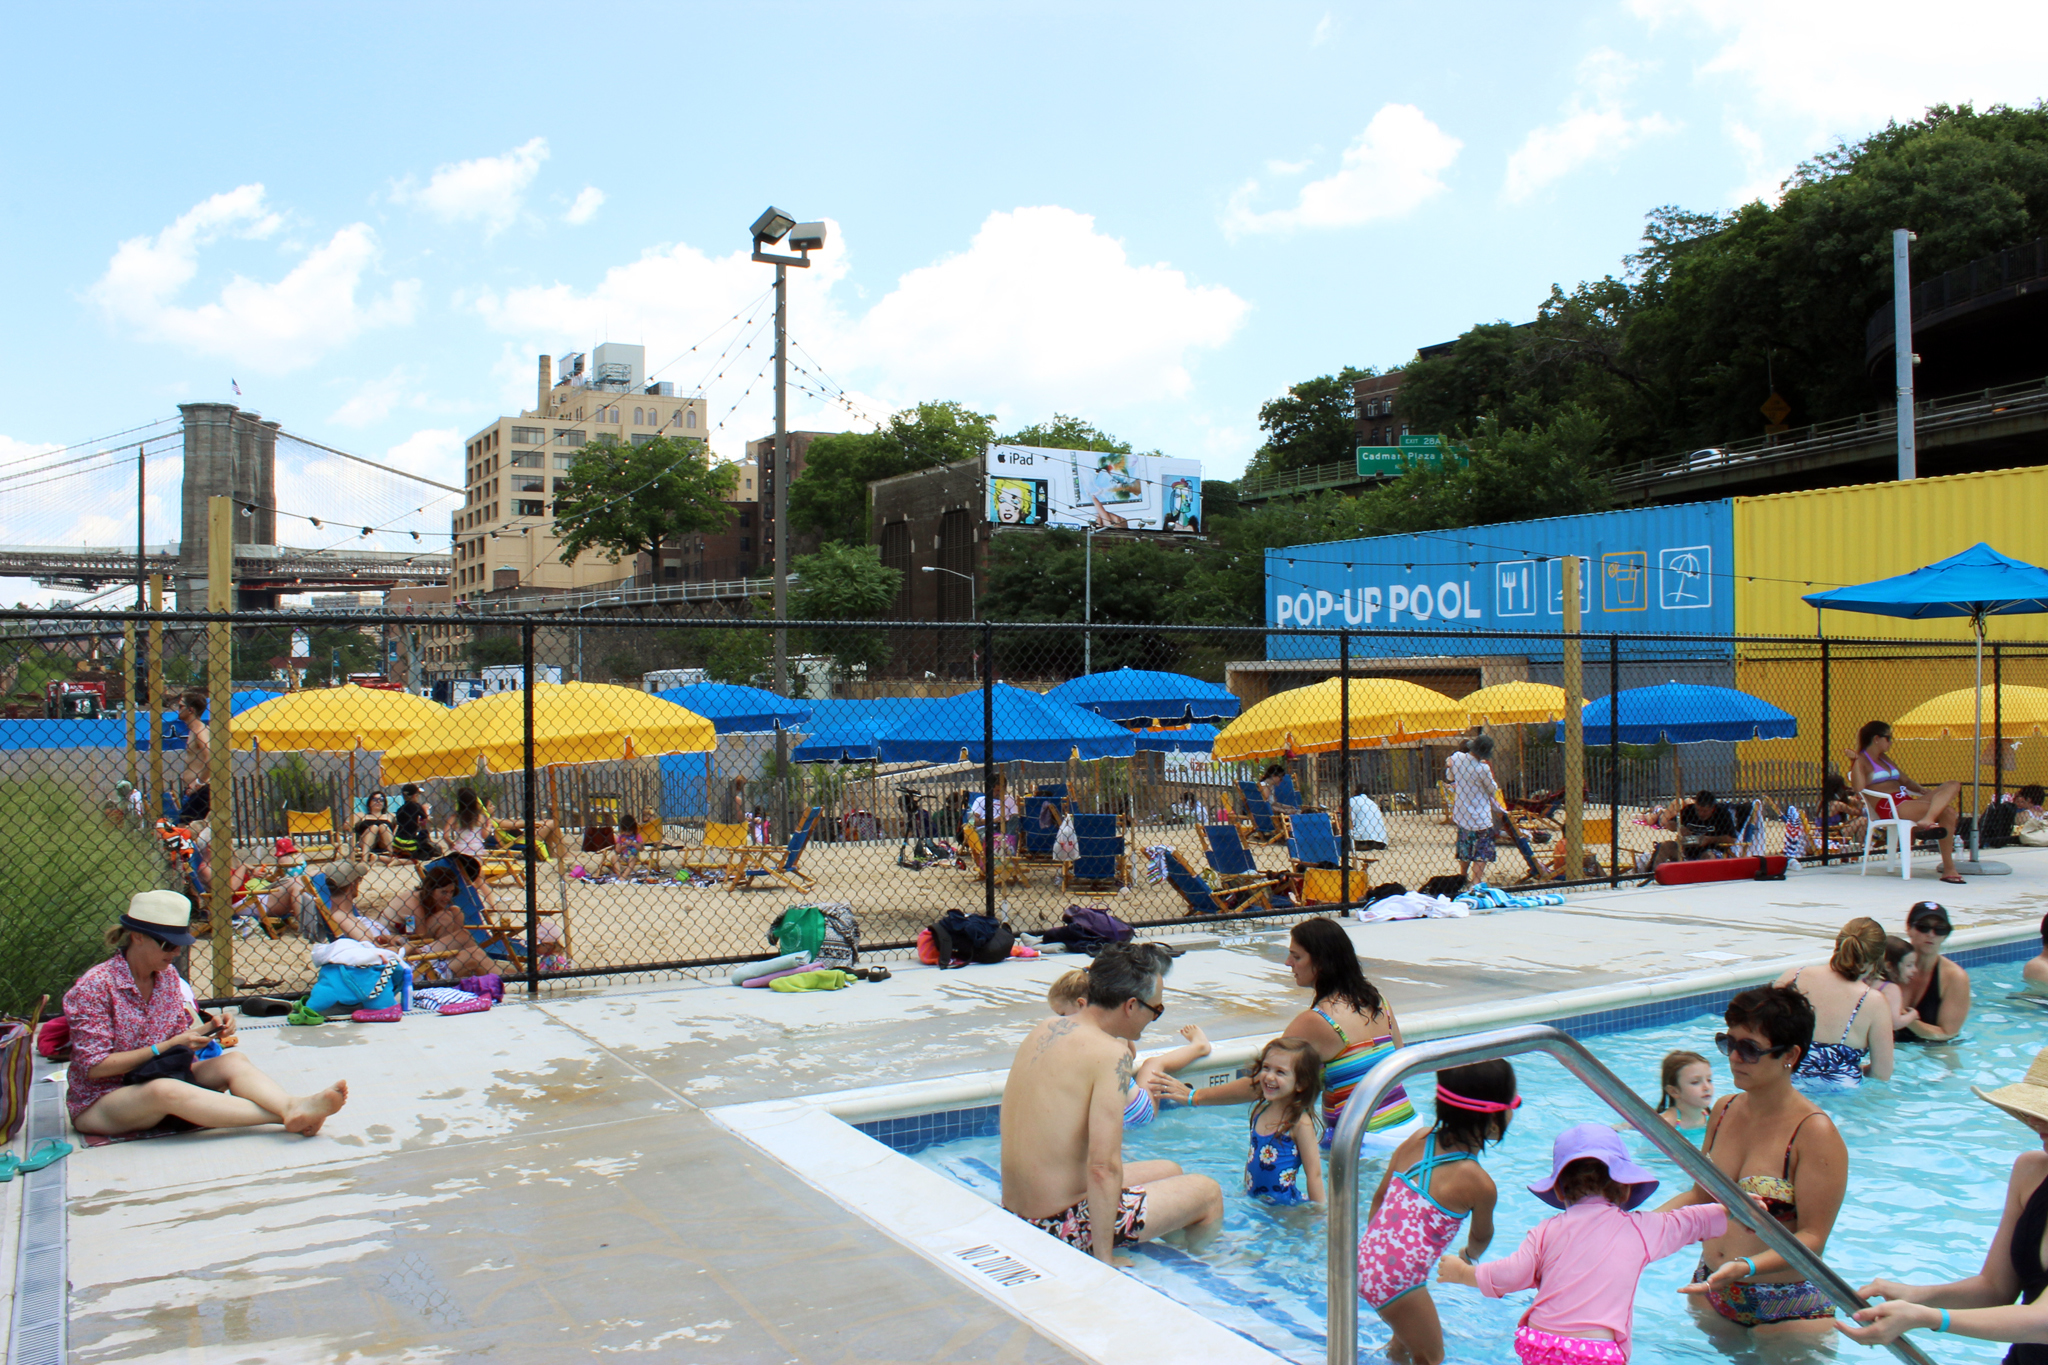 Pop-up pool at Brooklyn Bridge Park